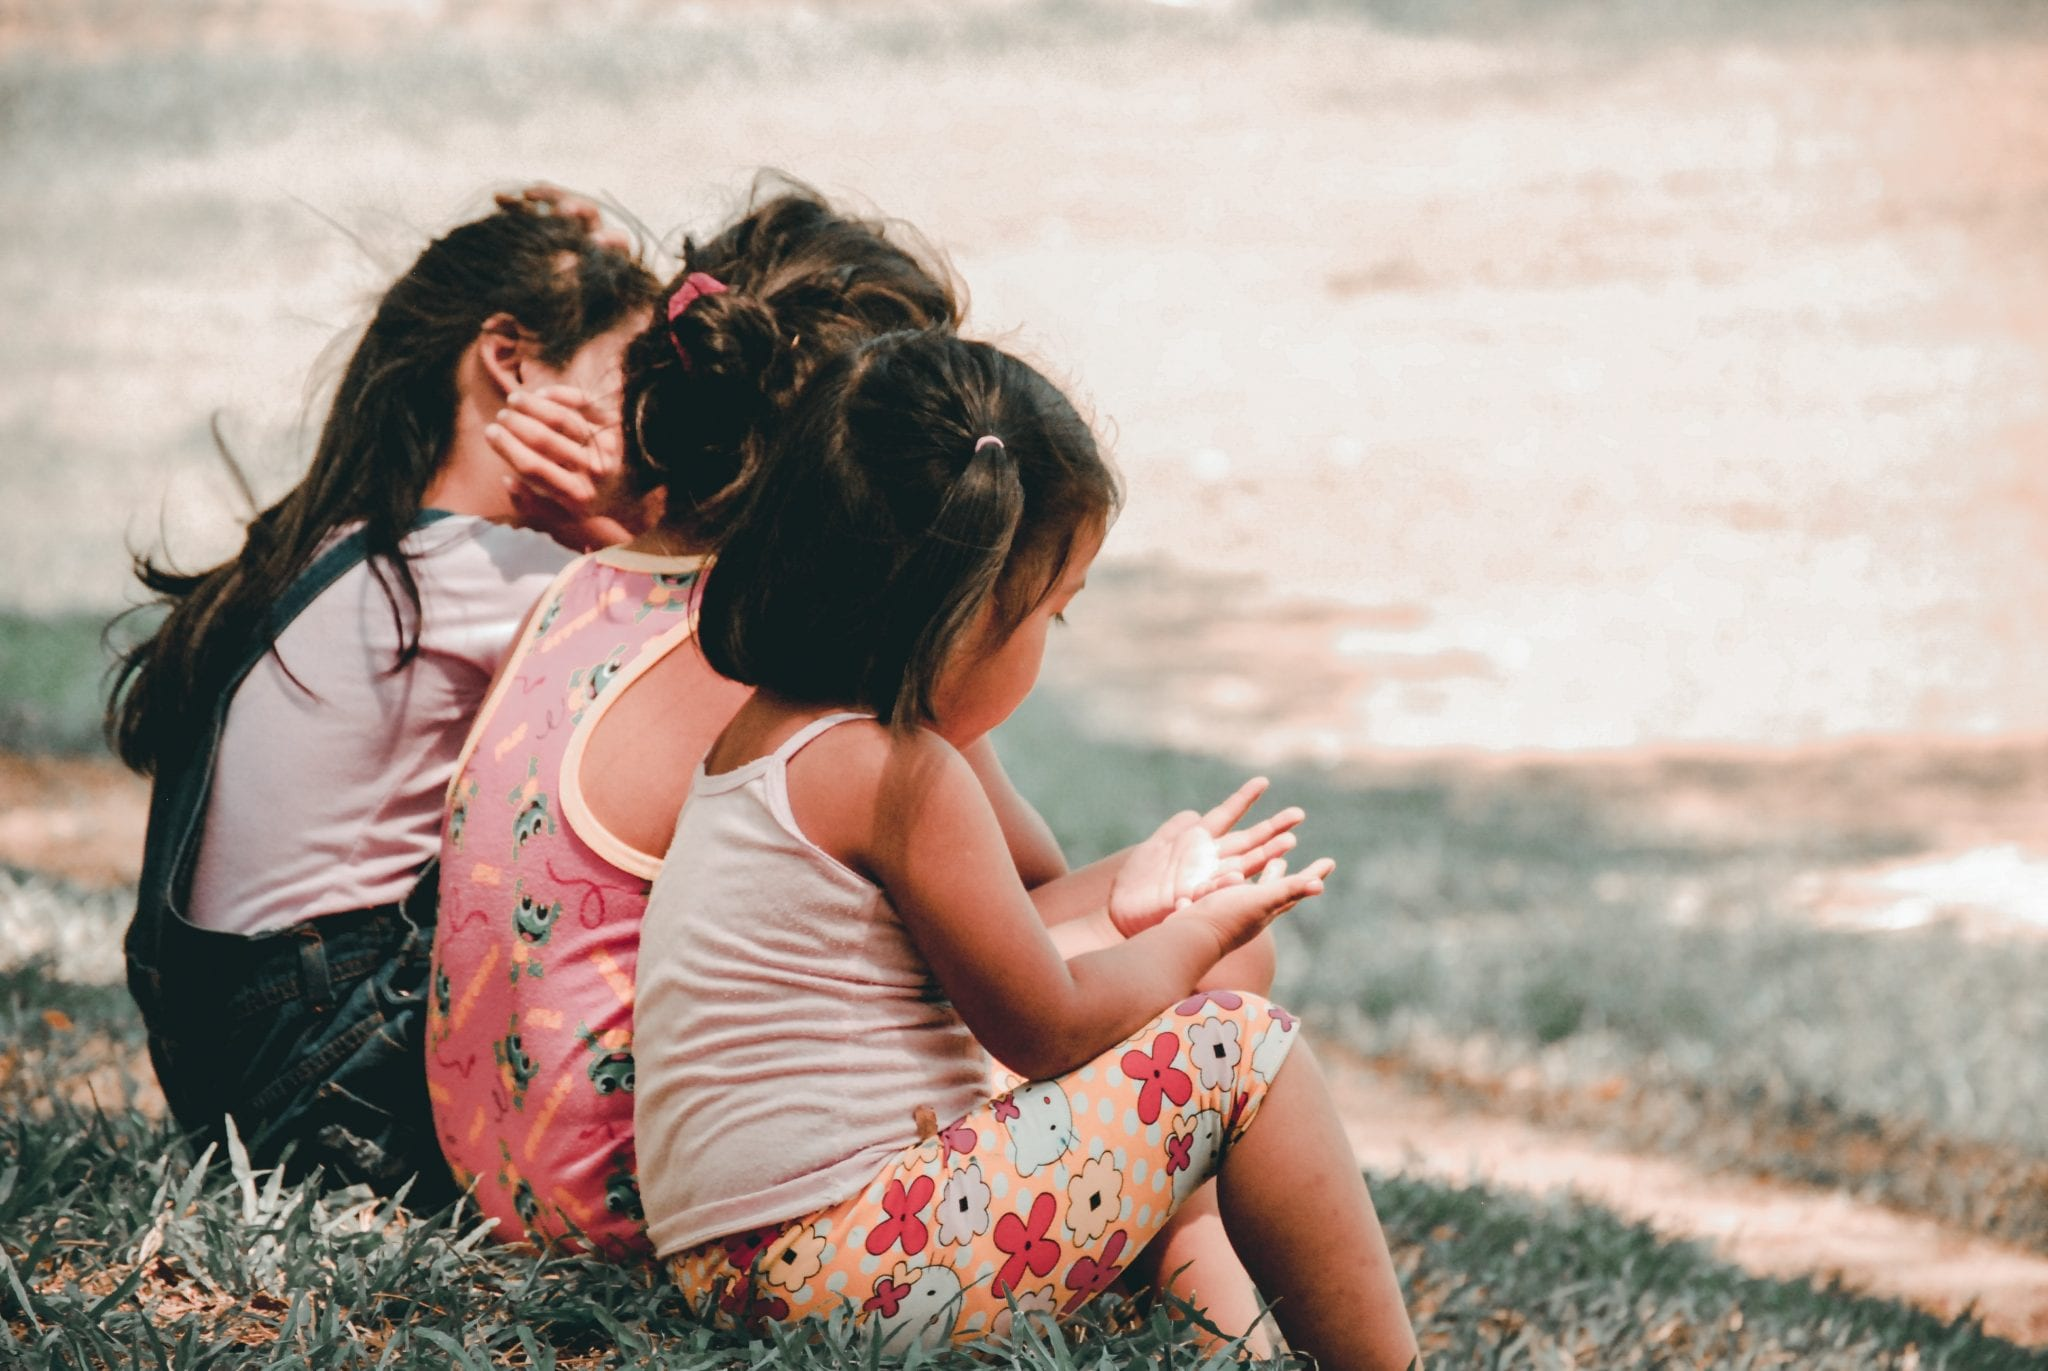 Beyond Institutional Care: Rethinking How We Care for Vulnerable Children